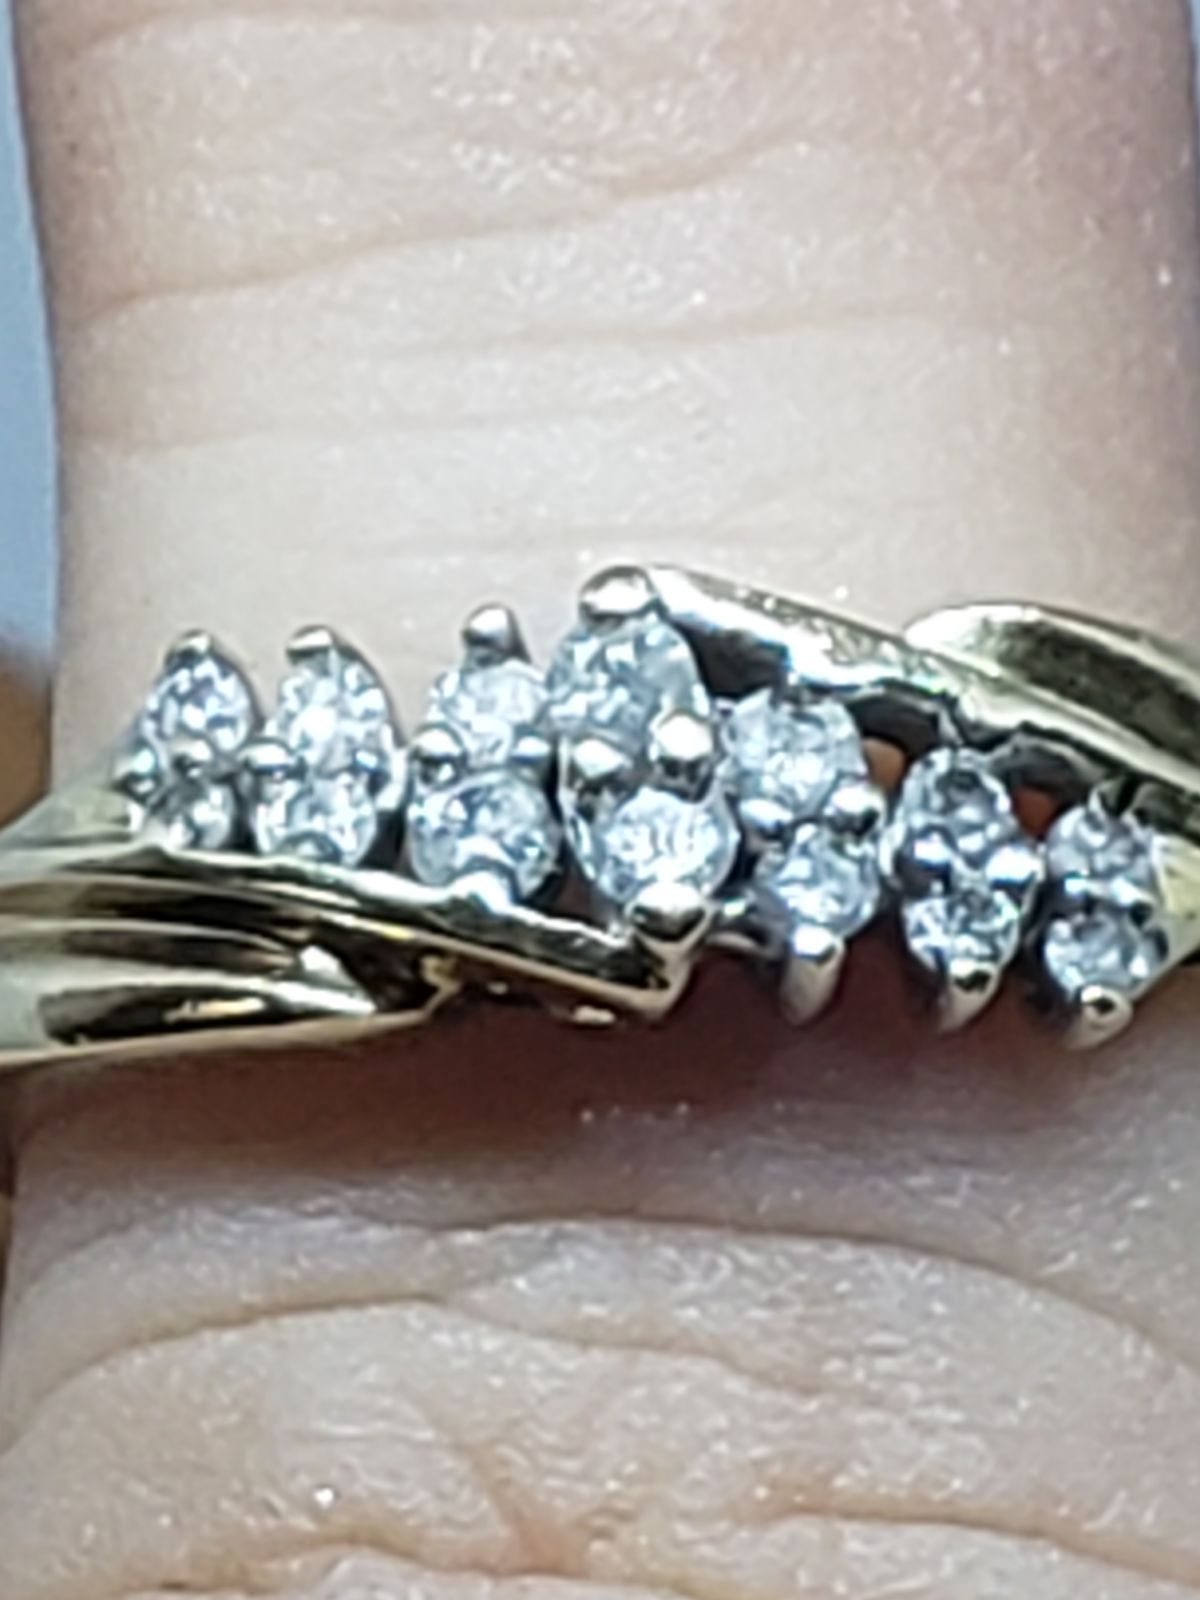 Solid 10k Gold Ring With Authentic Diamond S Not Sure On Kt S But They Are Not The Tiny Chip Diamond S I Have Had This Ri 10k Gold Ring Rings Wedding Rings